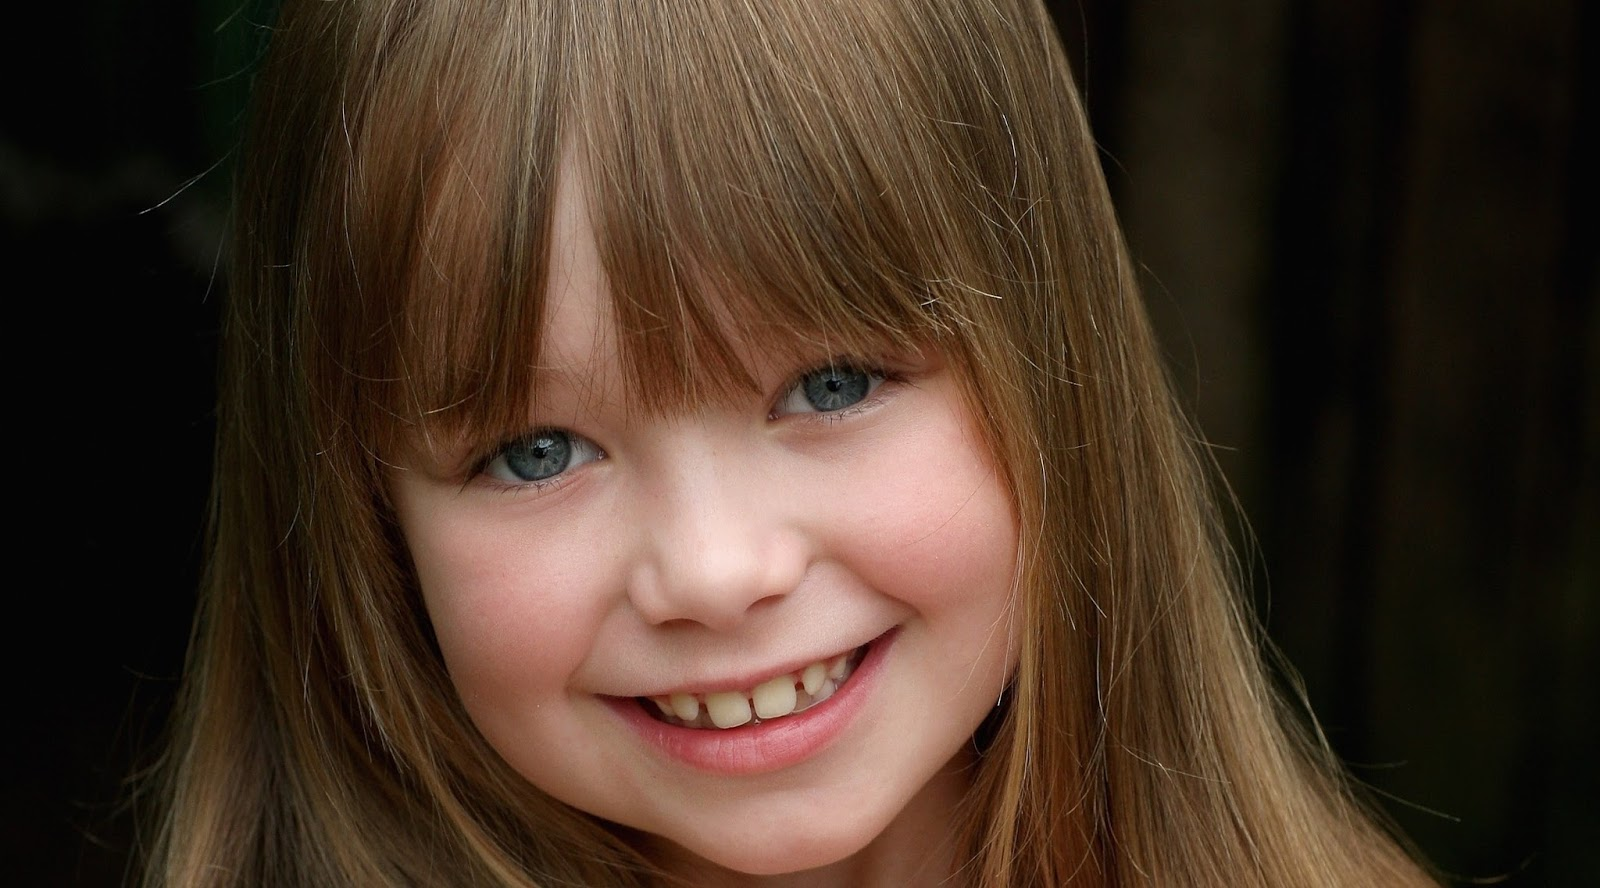 Girl with bangs that doesn't cause amblyopia